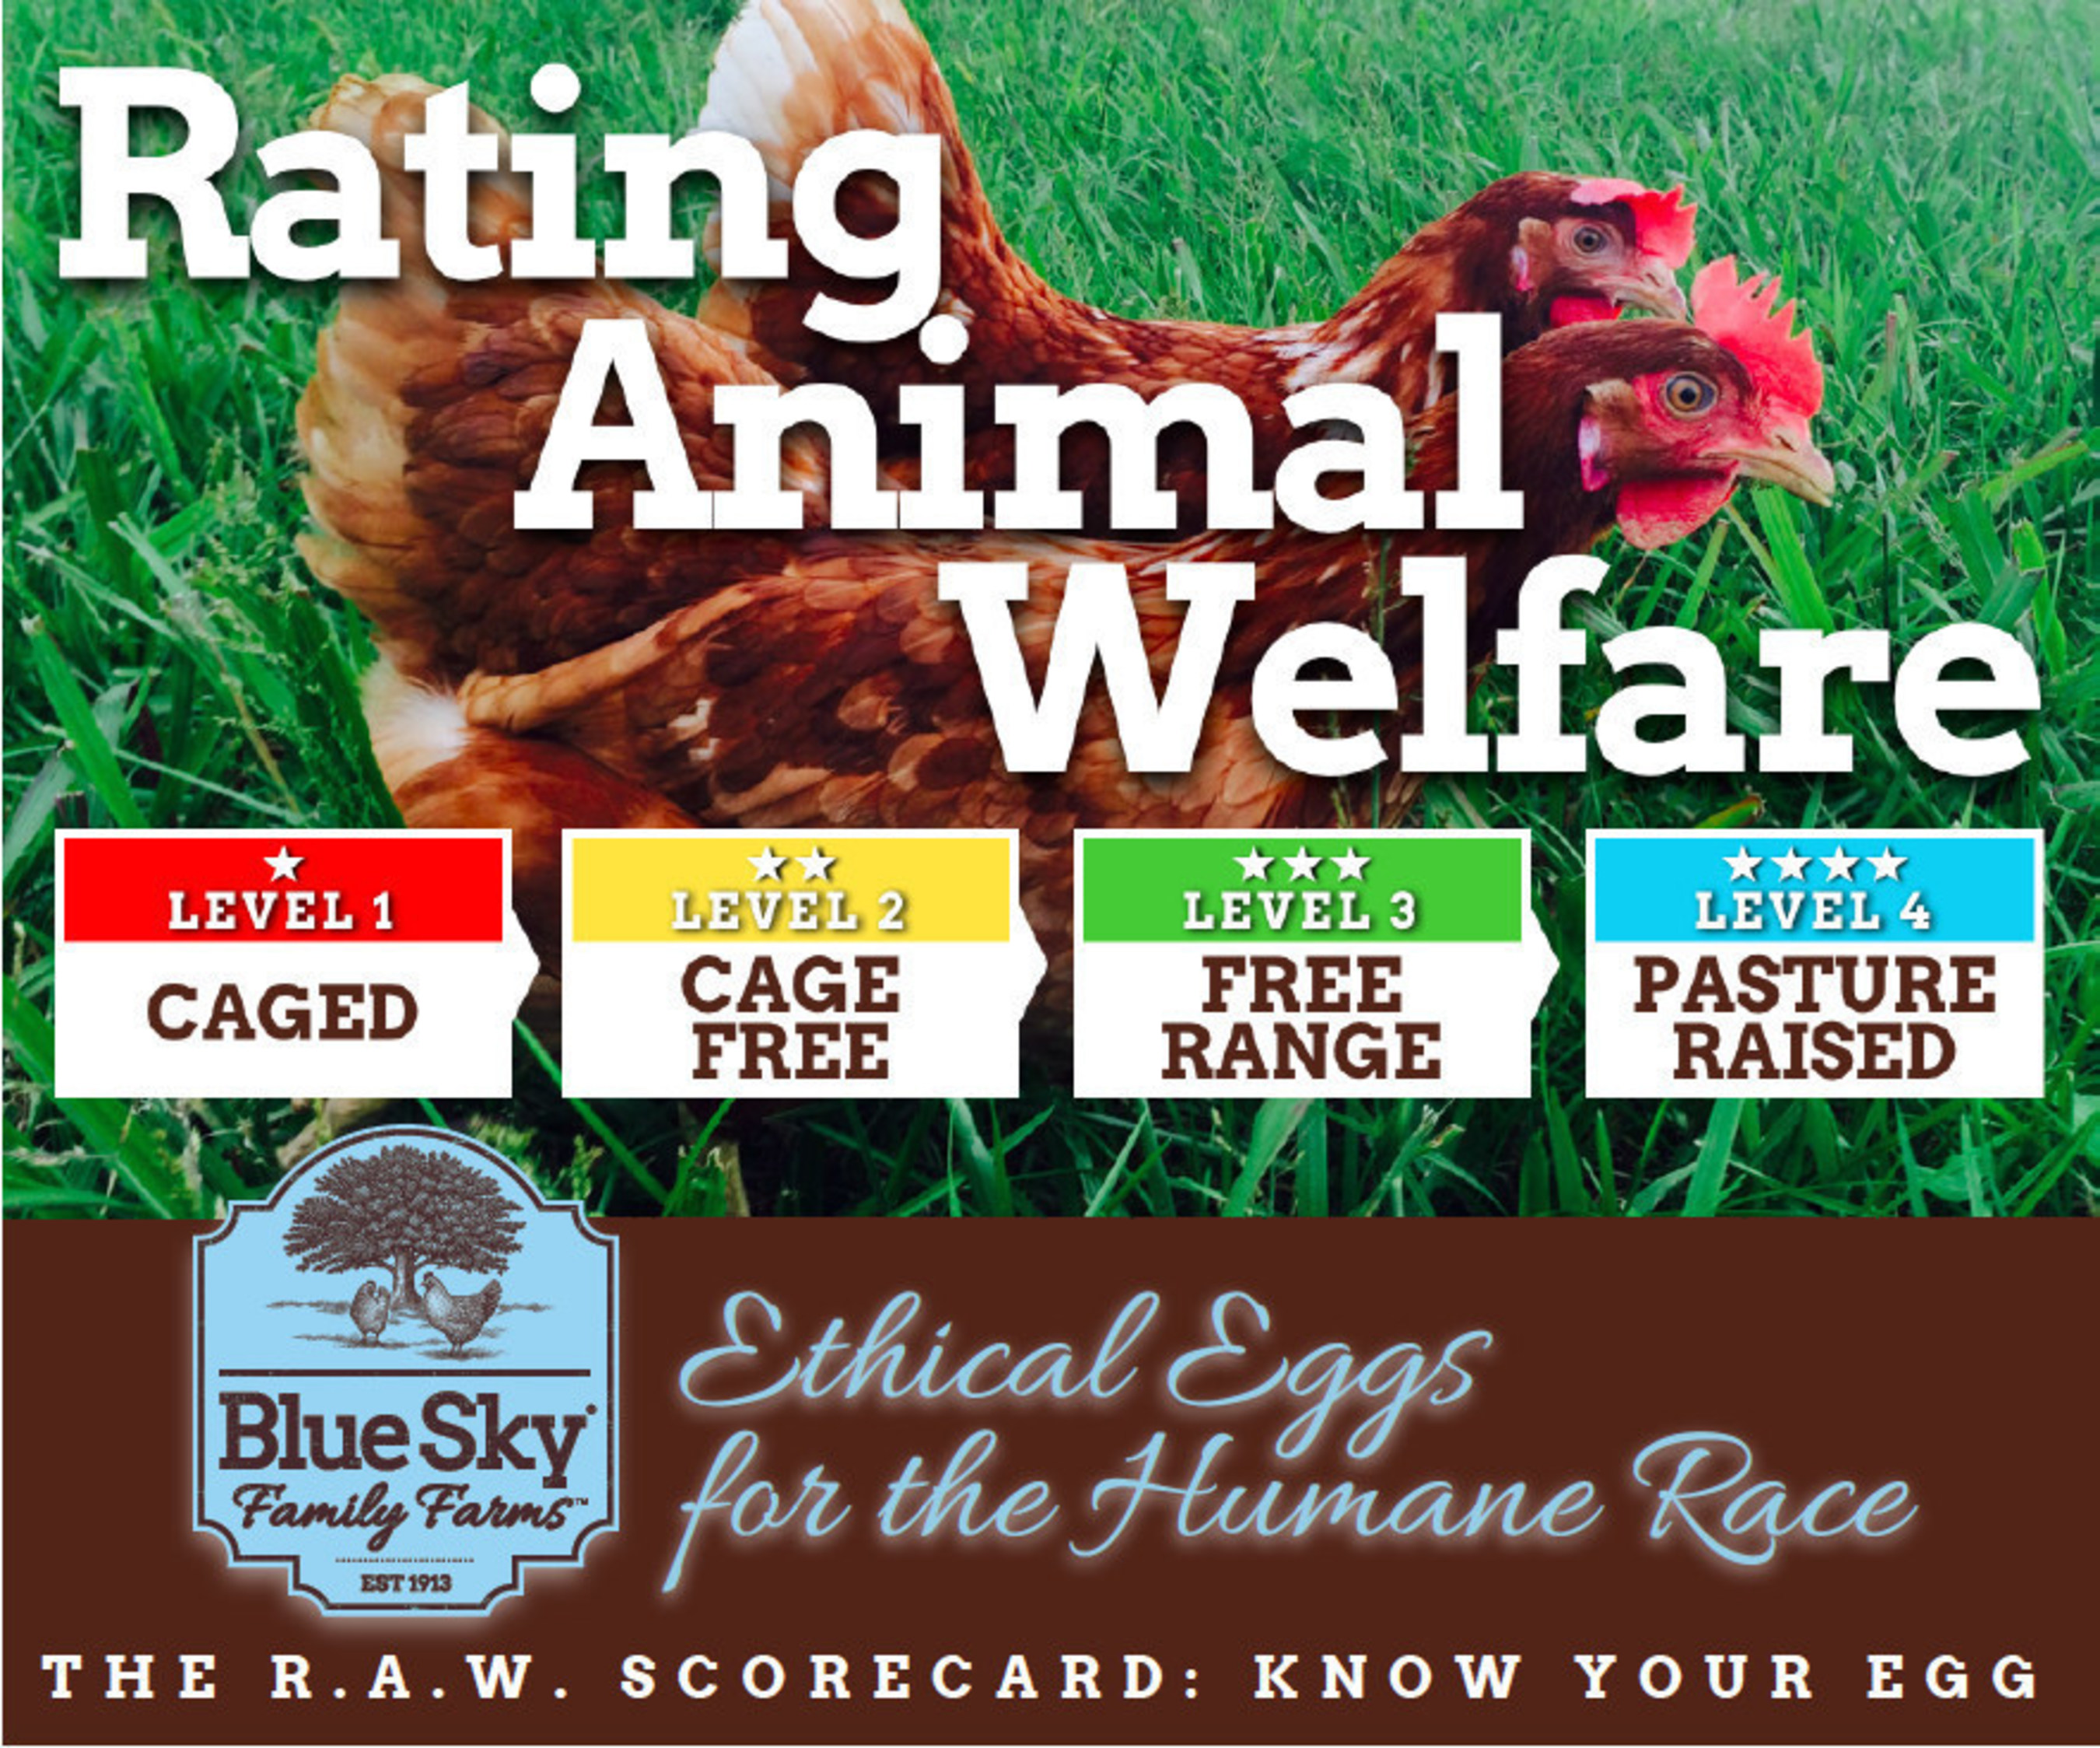 To illustrate the difference and help consumers get to know their eggs, Blue Sky Family Farms introduces the ...